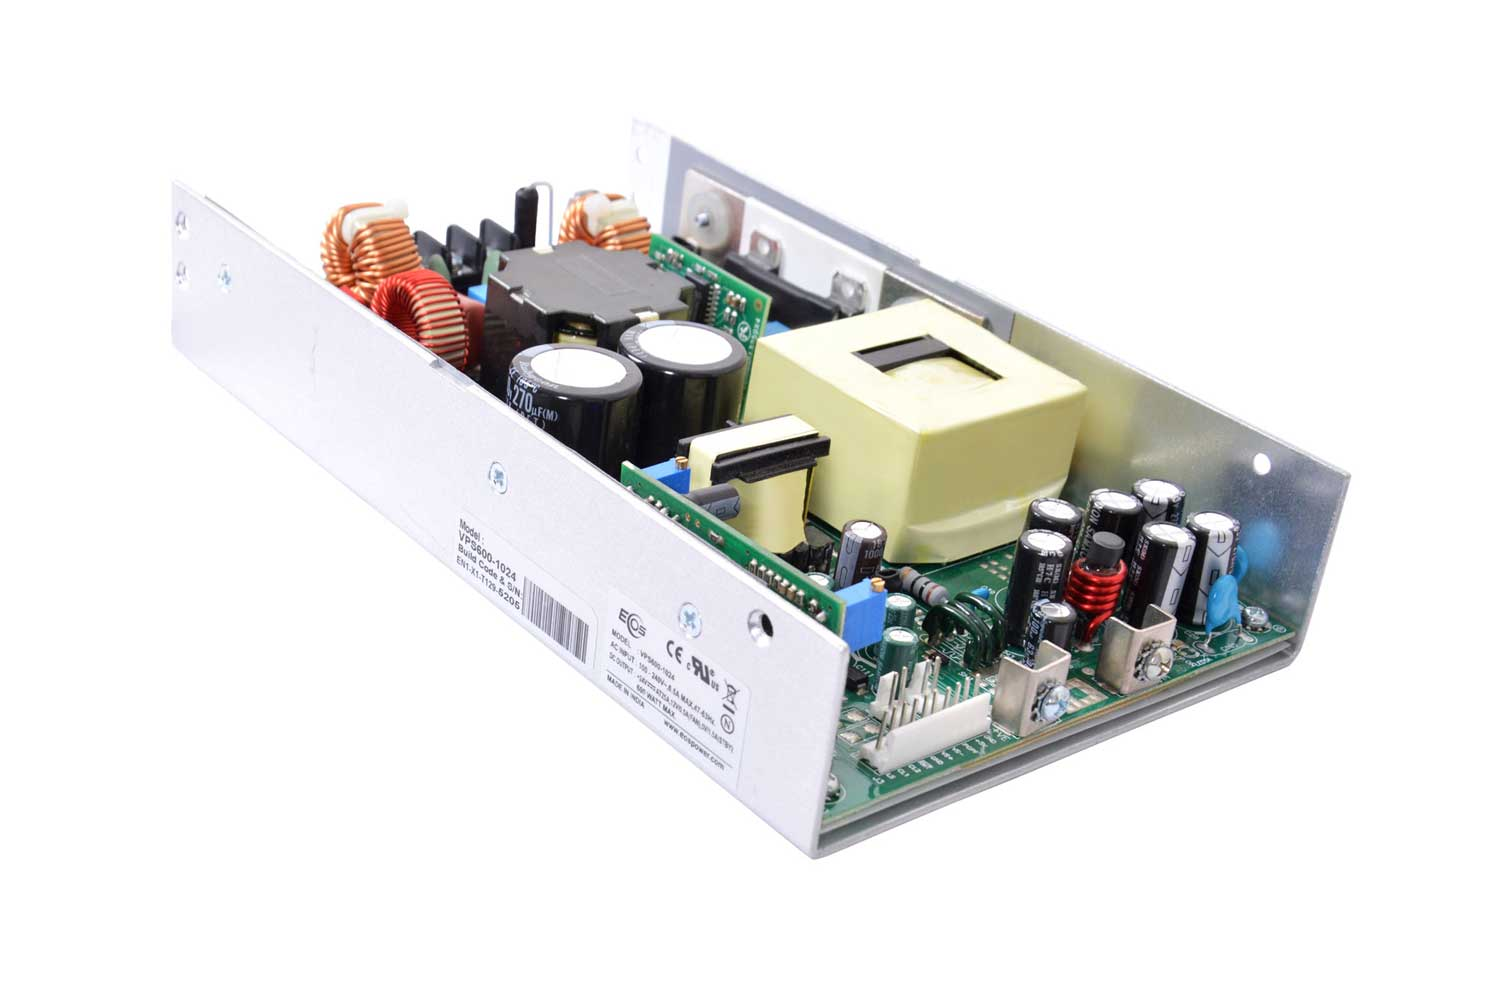 MVPS 600 - Dual Fusion Power Supply